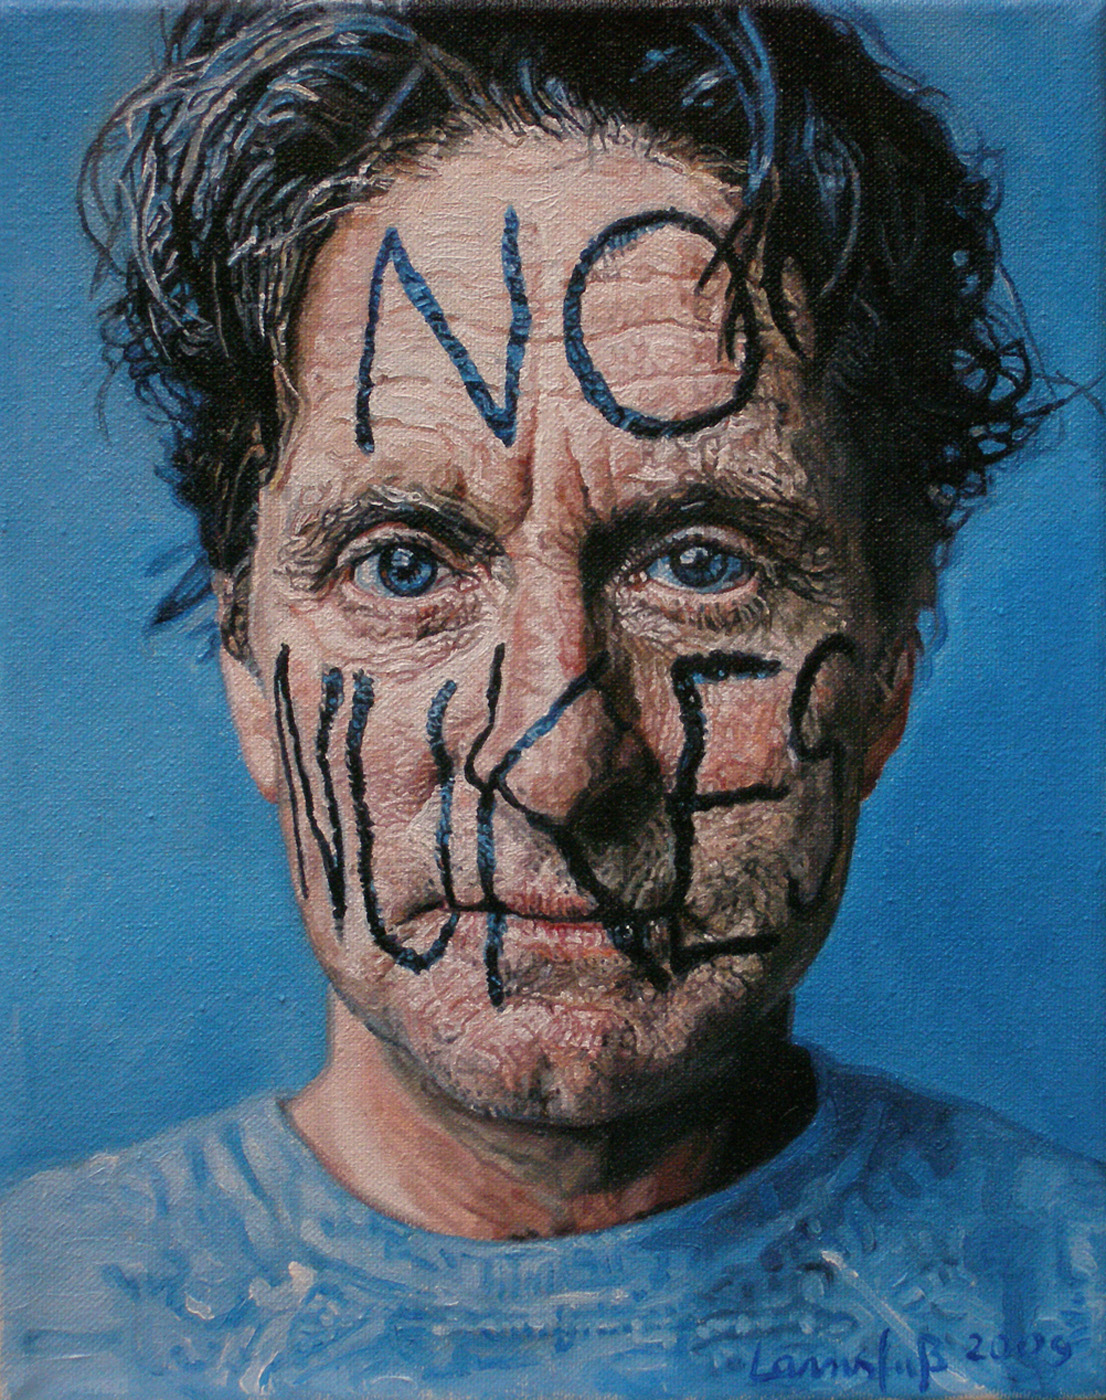 Ulrich Lamsfuss   Peggy Sigota, Michael Douglas–No Nukes (Jalouse, Dez 2000 - Jan 2001) , 2009 oil on canvas 12.01 x 9.65 inches 30.5 x 24.5 cm